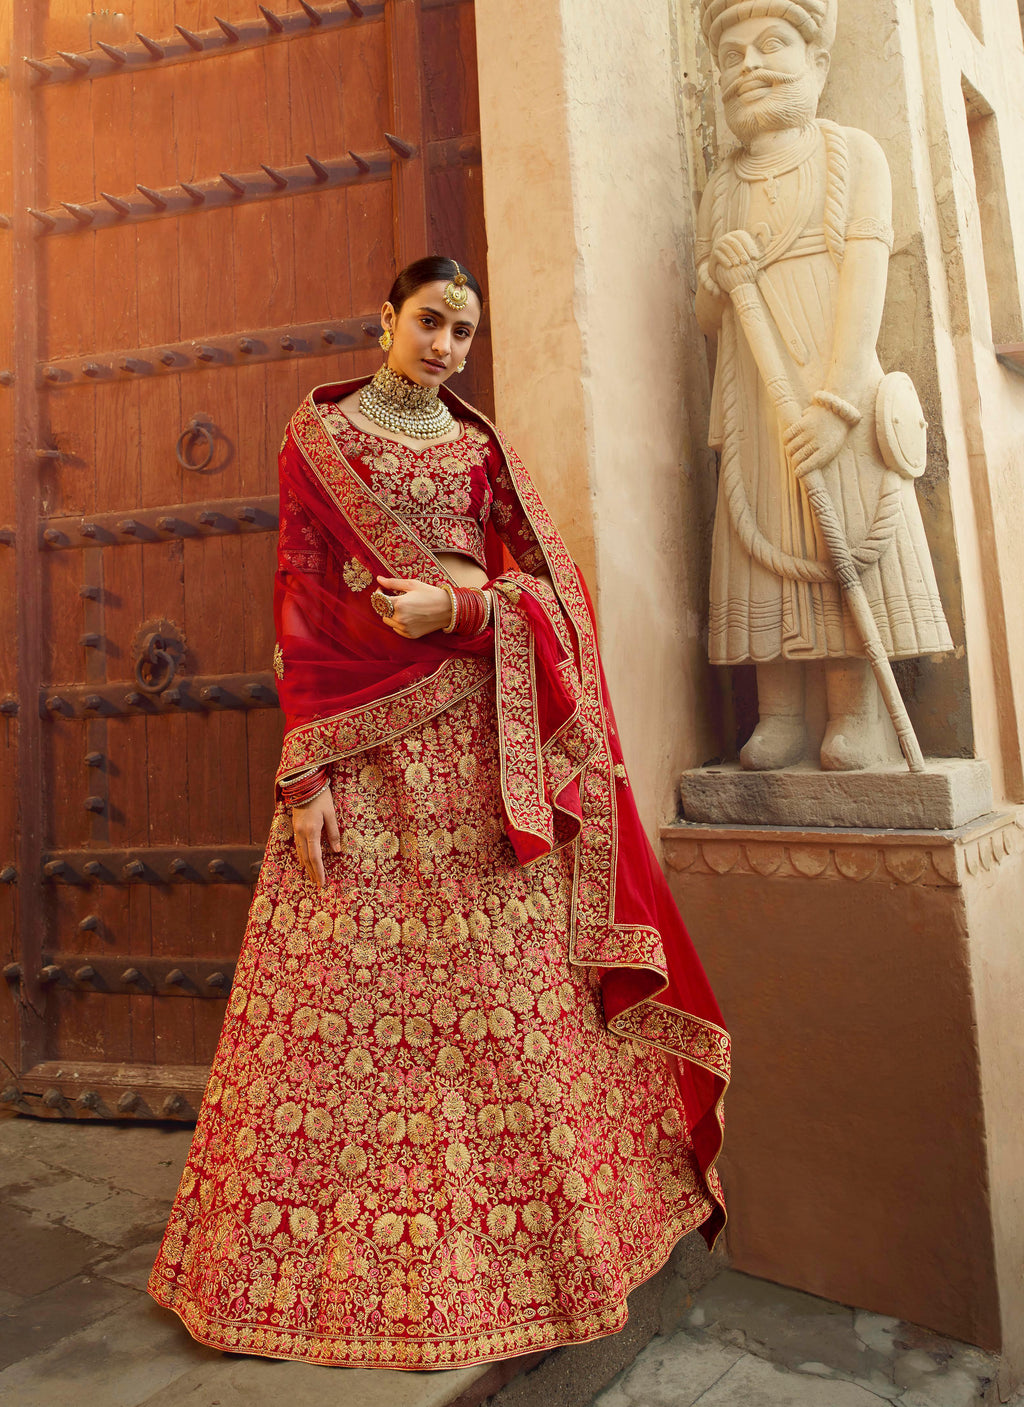 Red Velvet Embroidered Bridal Indian Wedding Lehenga Choli